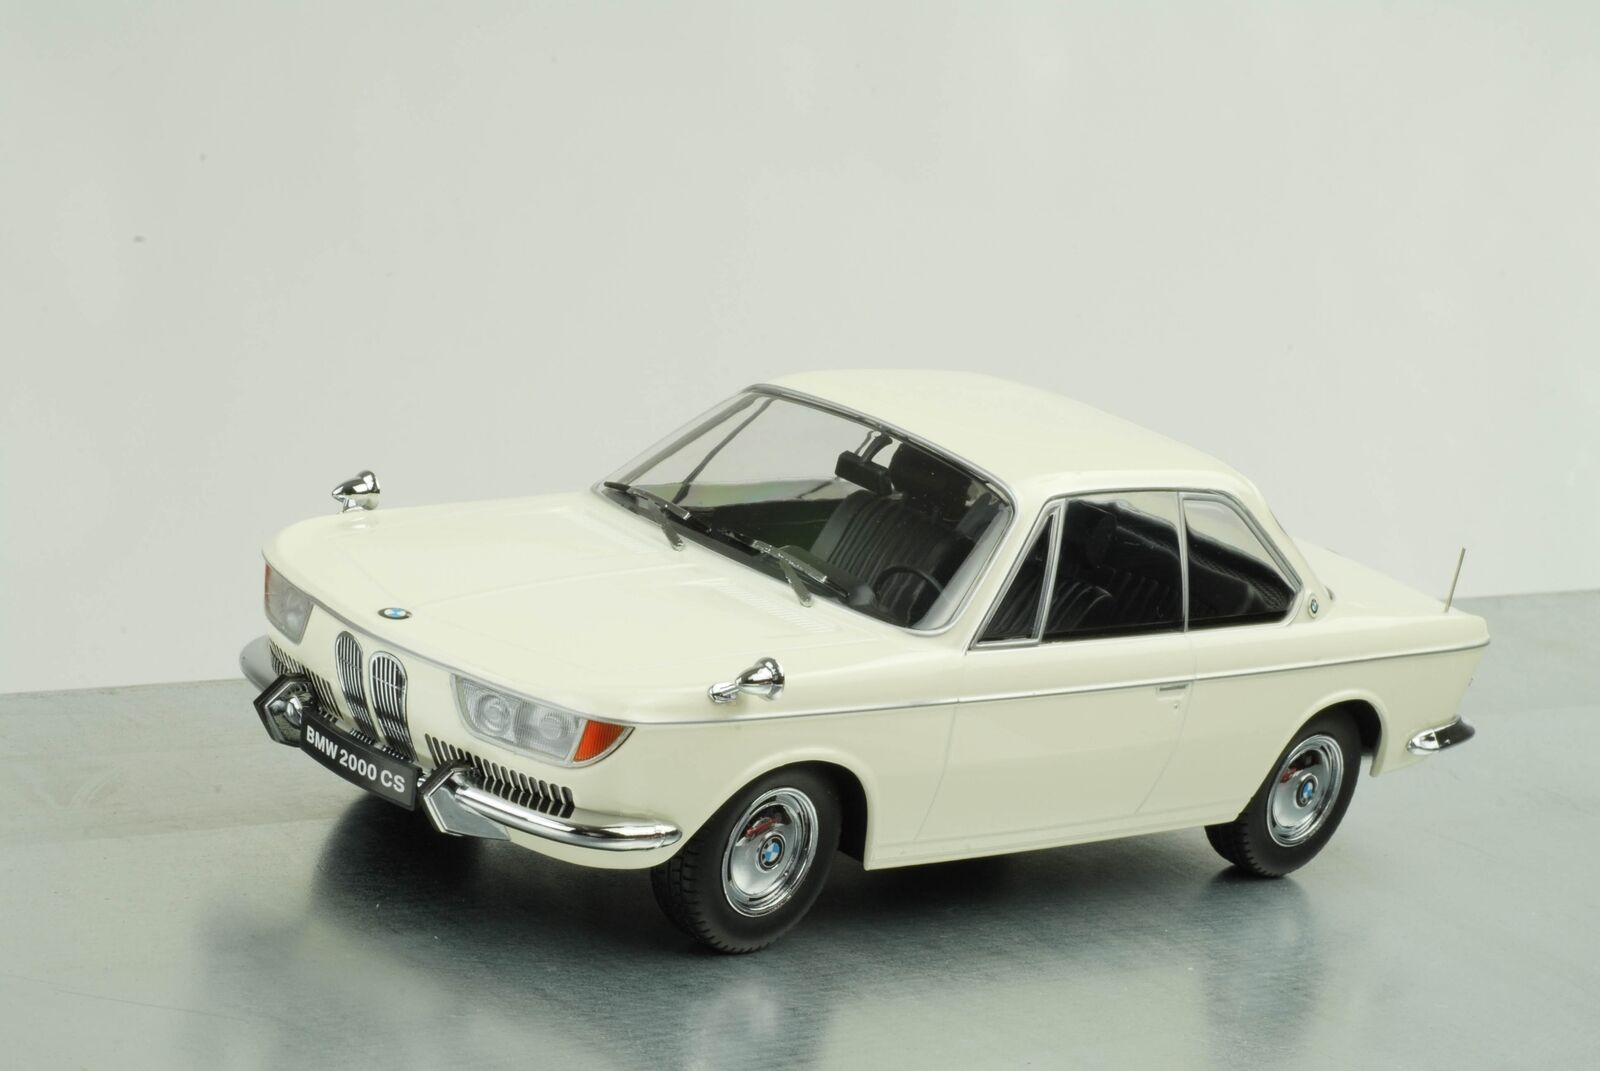 1965/1970 BMW 2000 Cs Coupè Karmann/Bianco Crema 1:18 Kk Scale Diecast